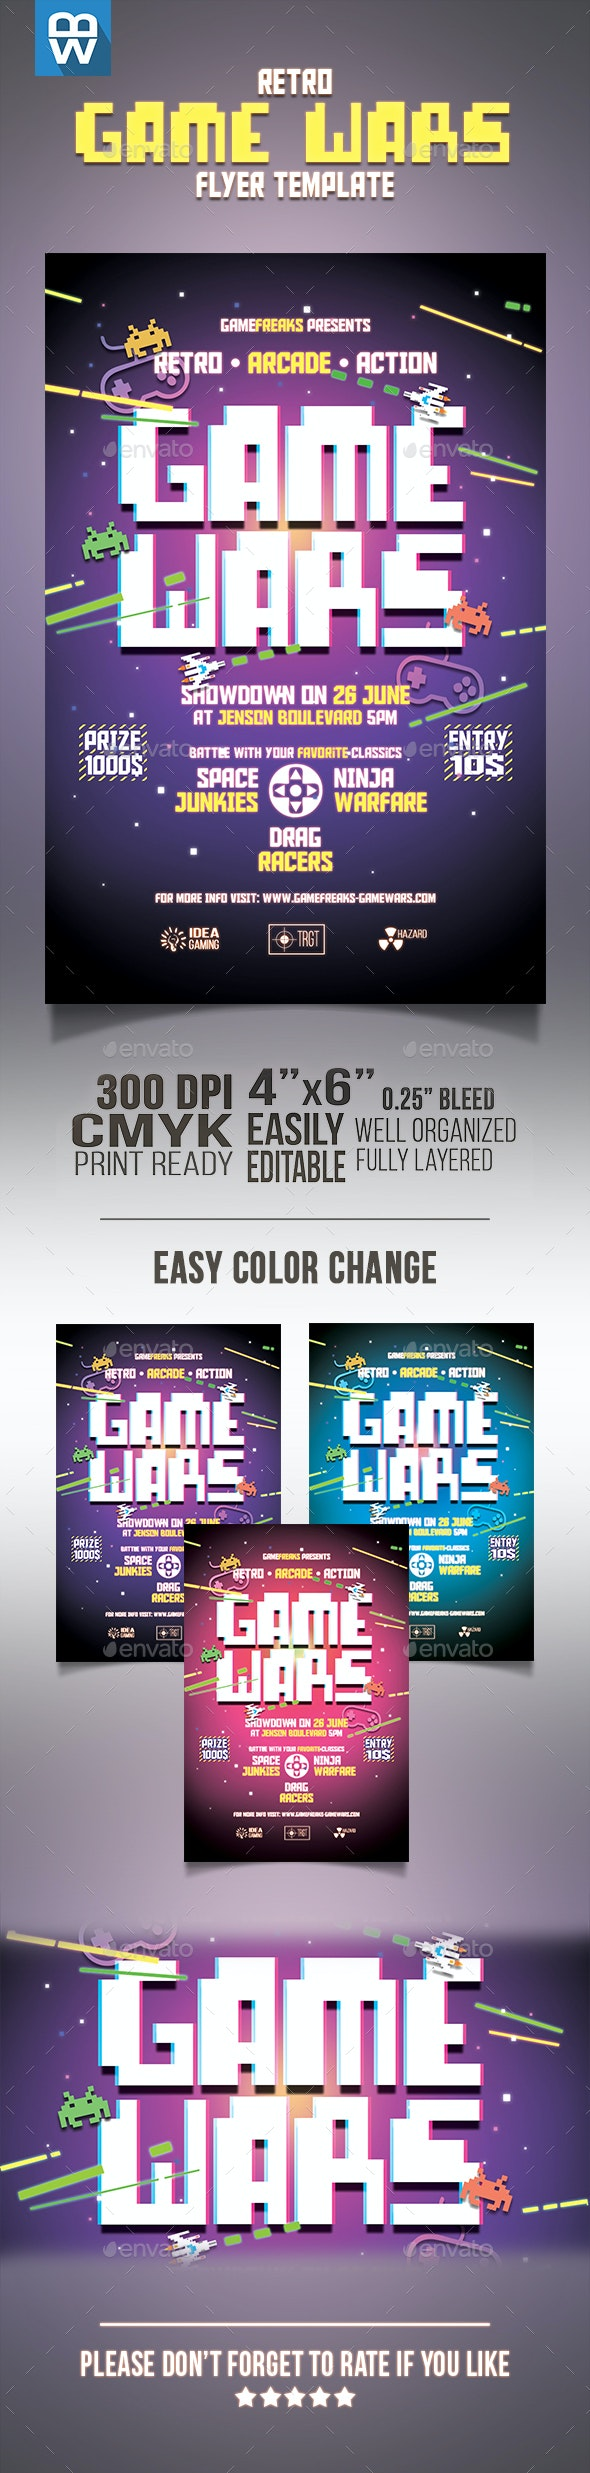 Retro Game Wars Flyer - Miscellaneous Events